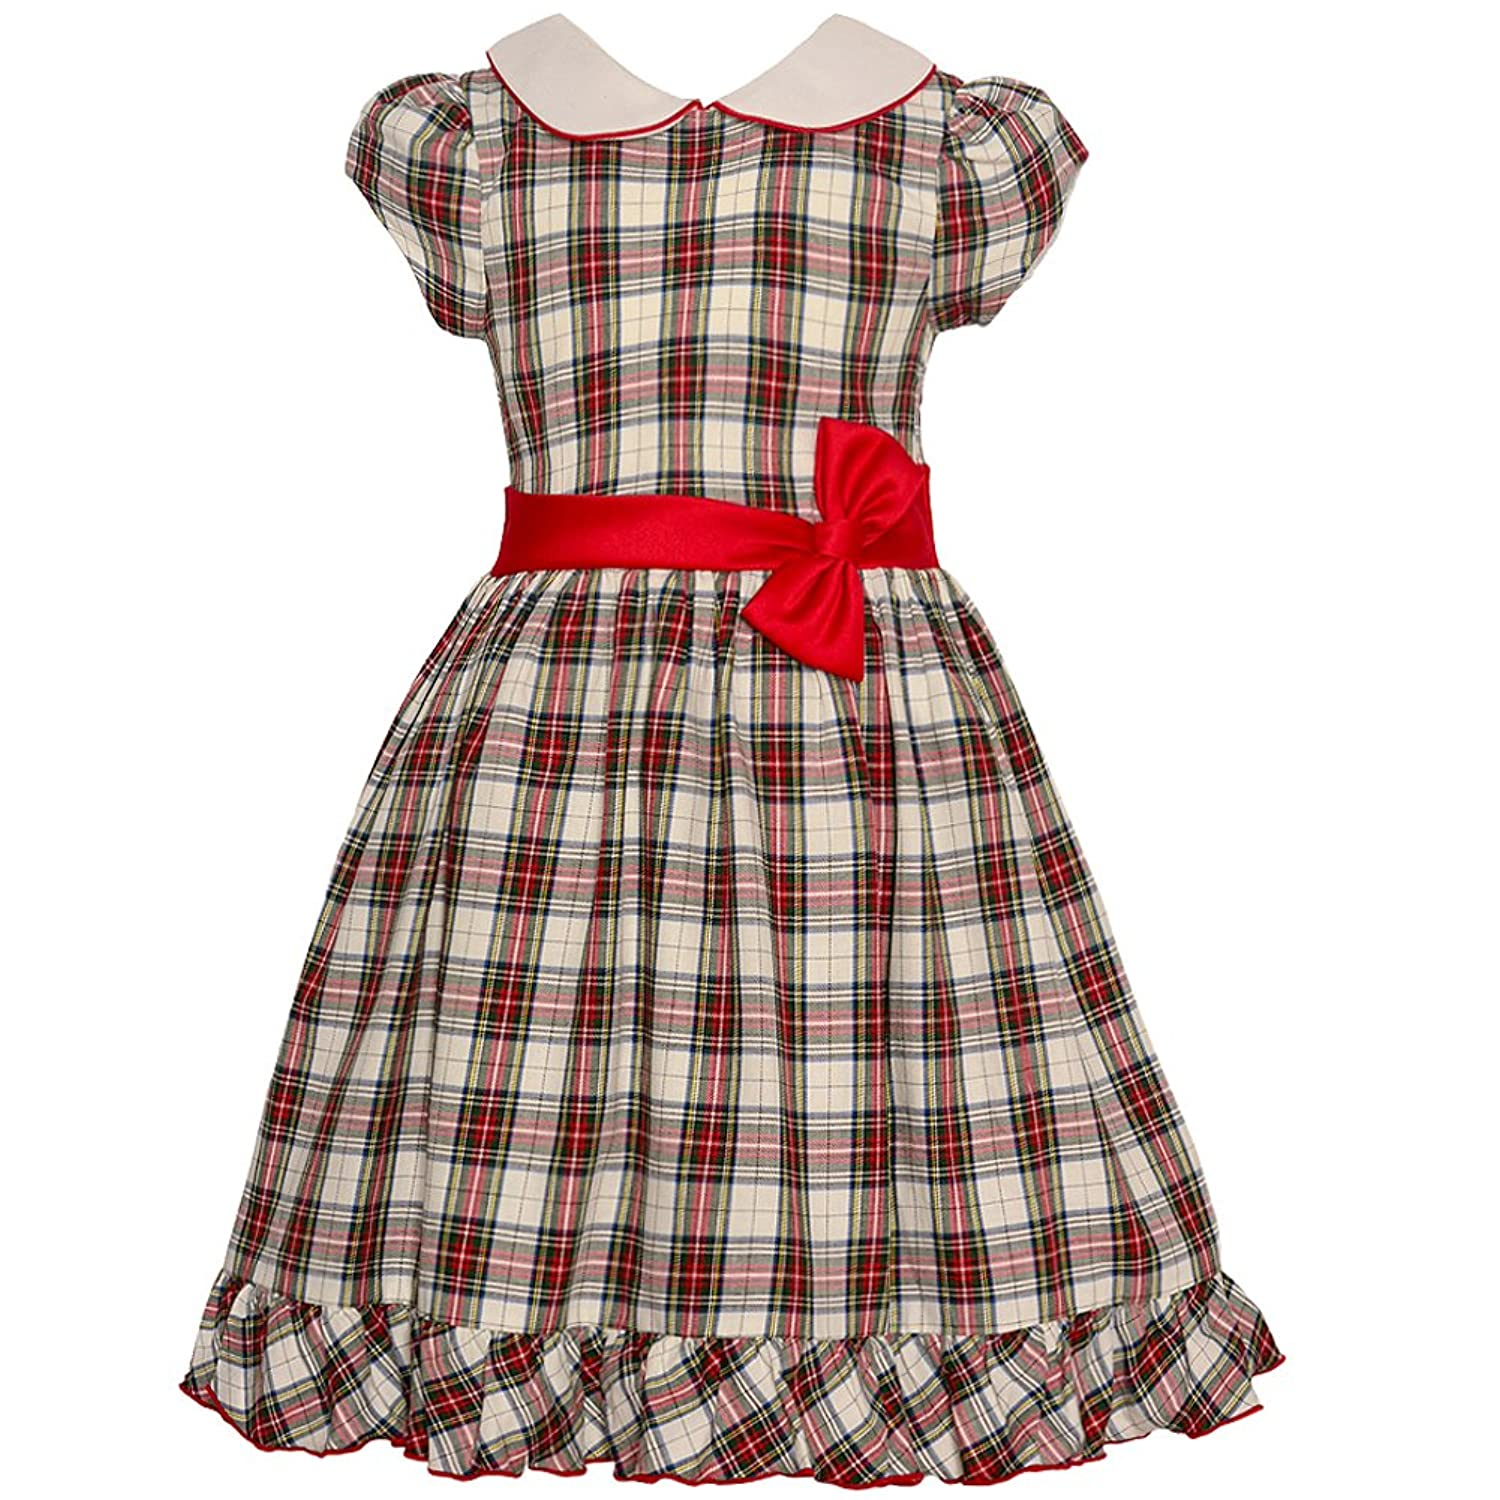 1940s Children's Clothing: Girls, Boys, Baby, Toddler Bonnie Jean Girls Collared Cotton Dress $39.20 AT vintagedancer.com